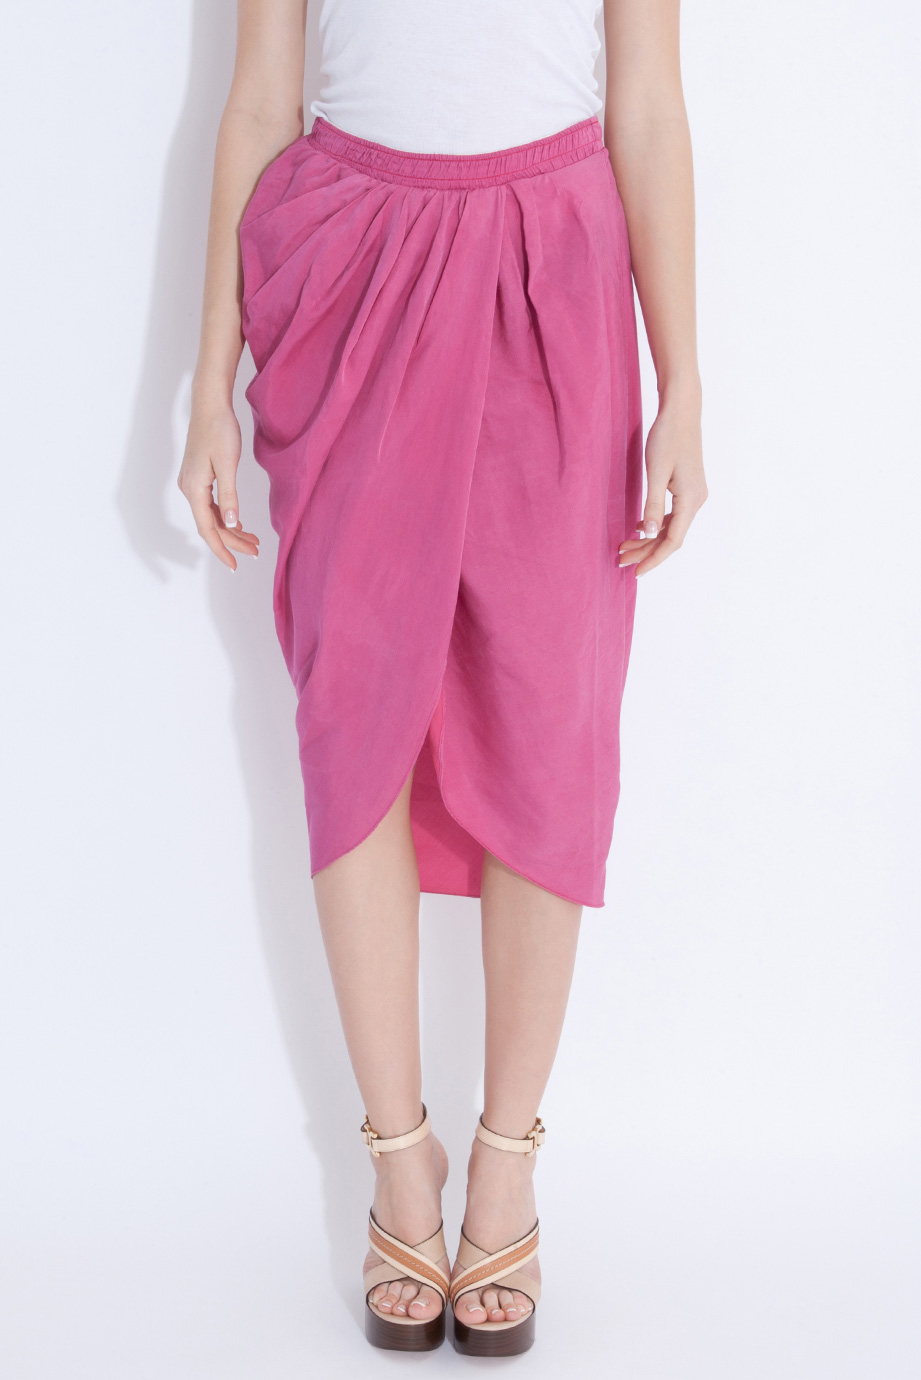 lyst - clu shirred sarong skirt in pink